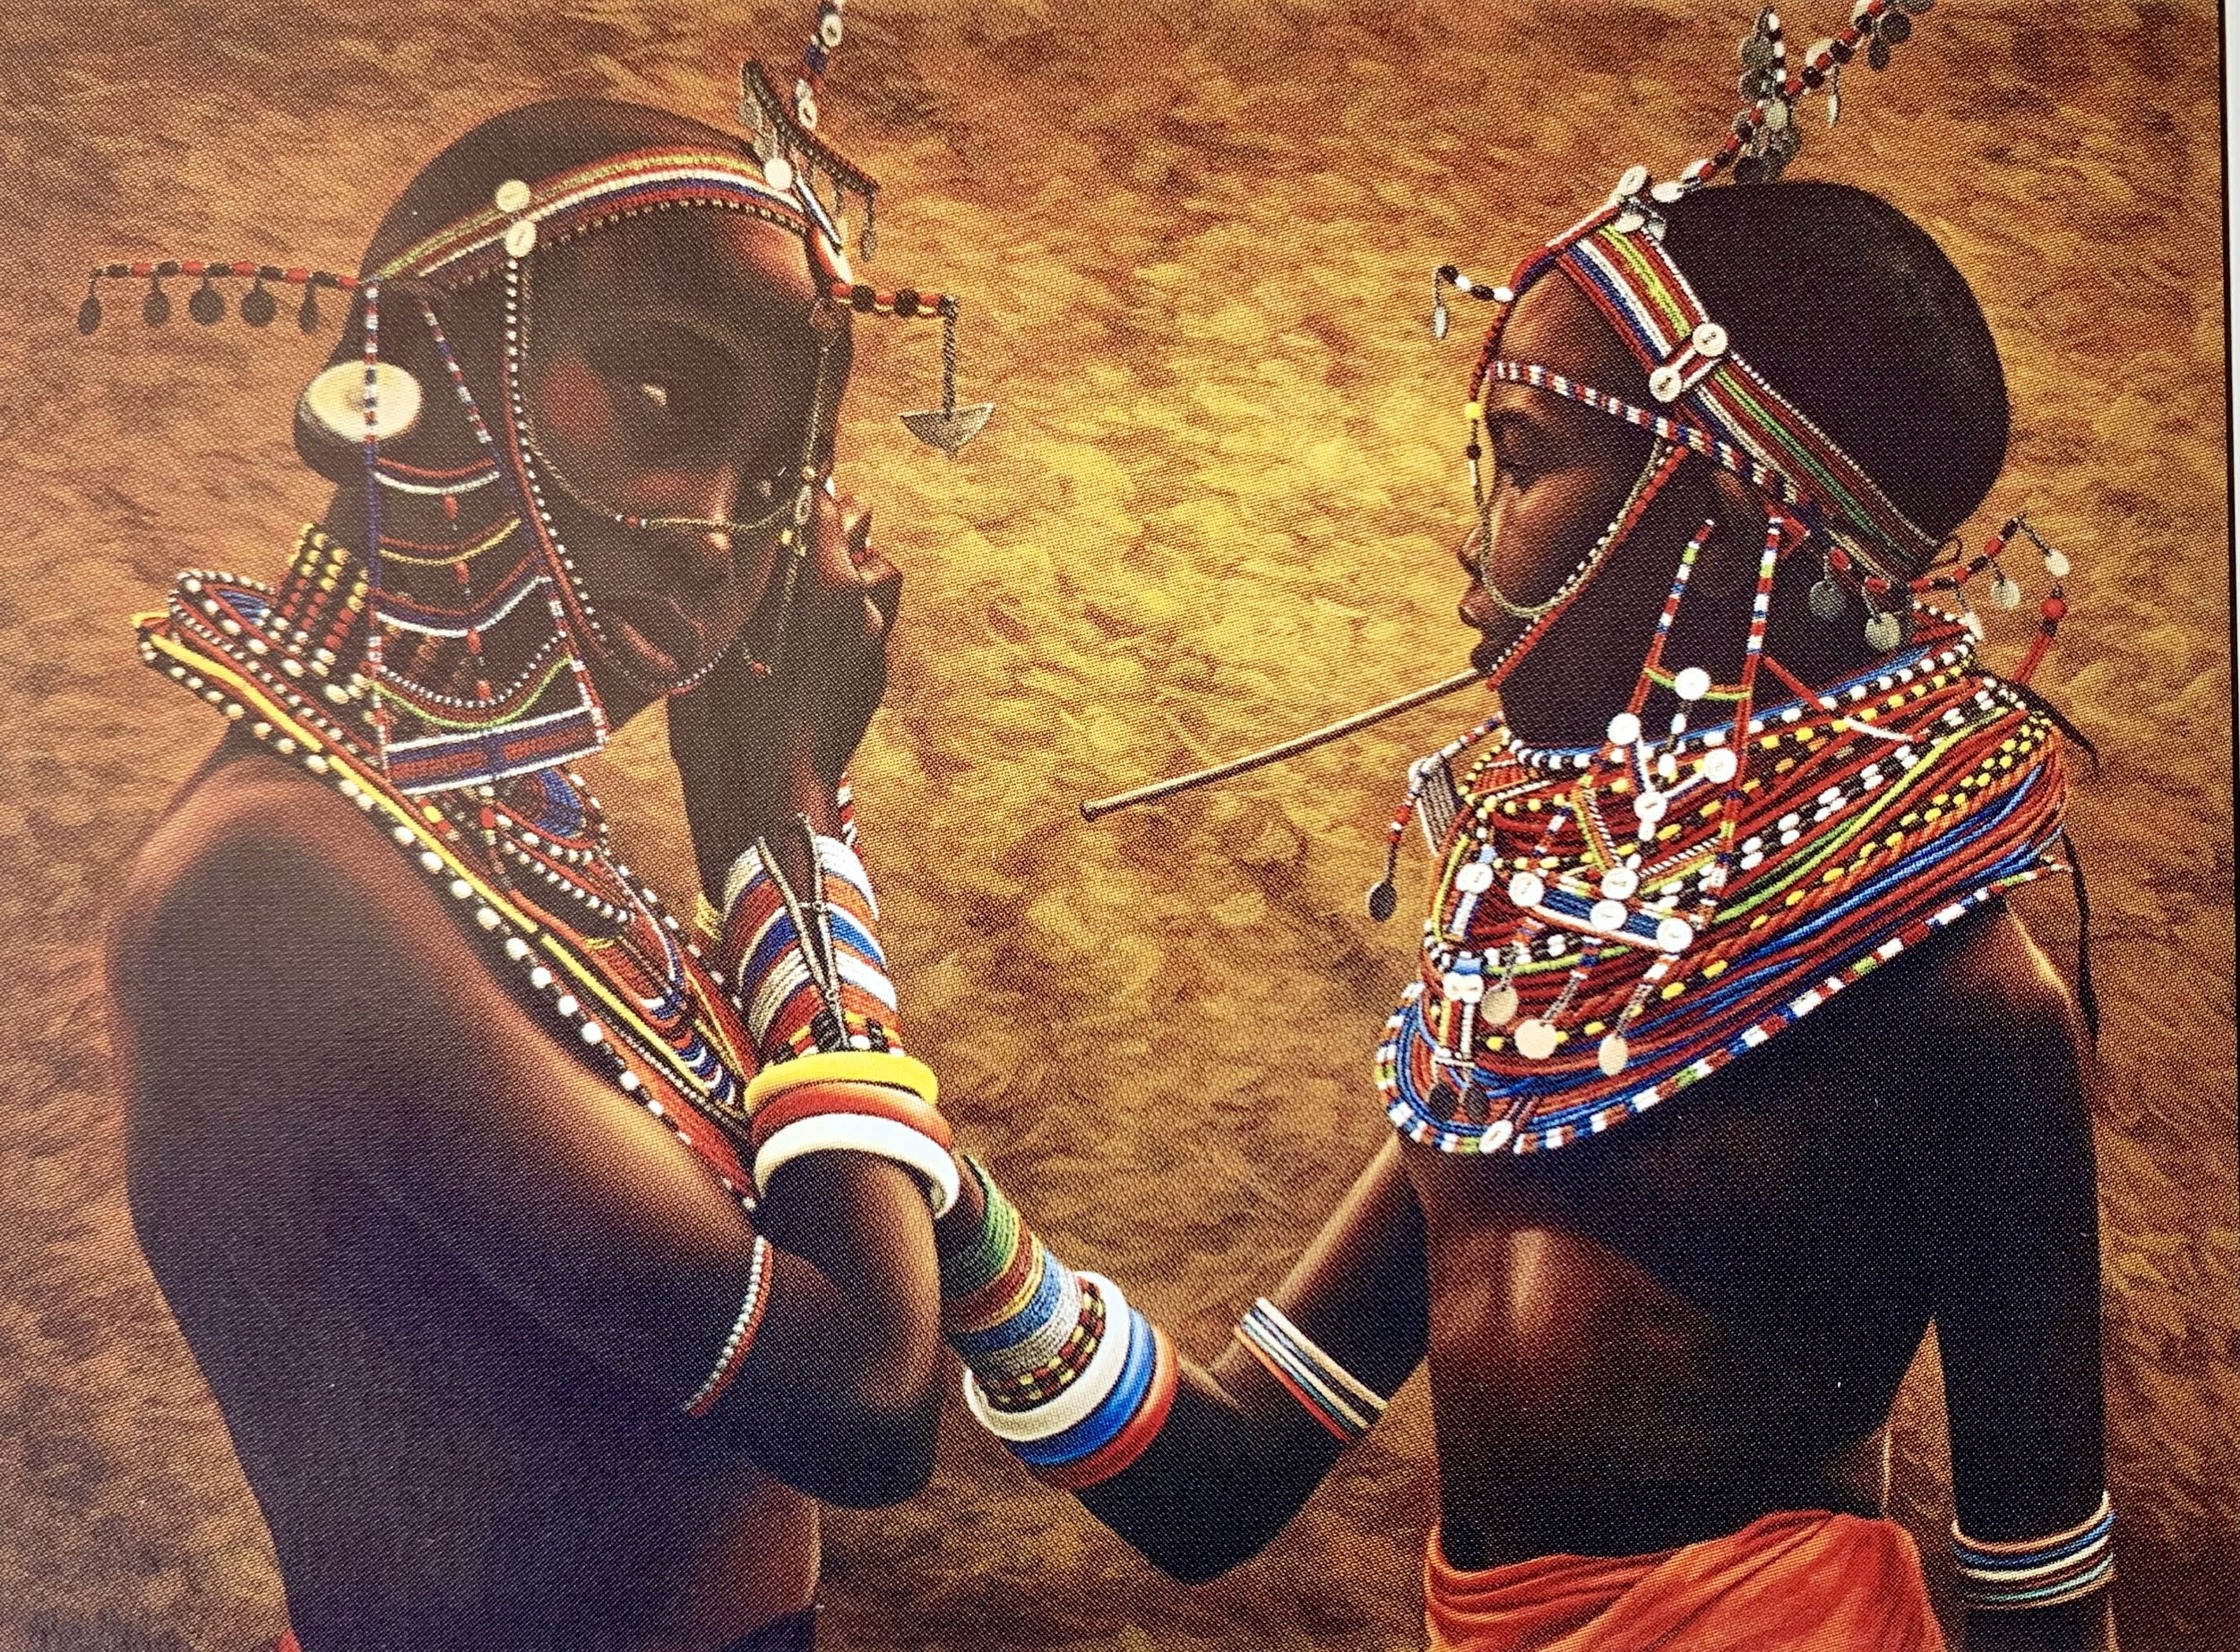 Artwork by Cleophus. Title: Girlfriends Before The Dance